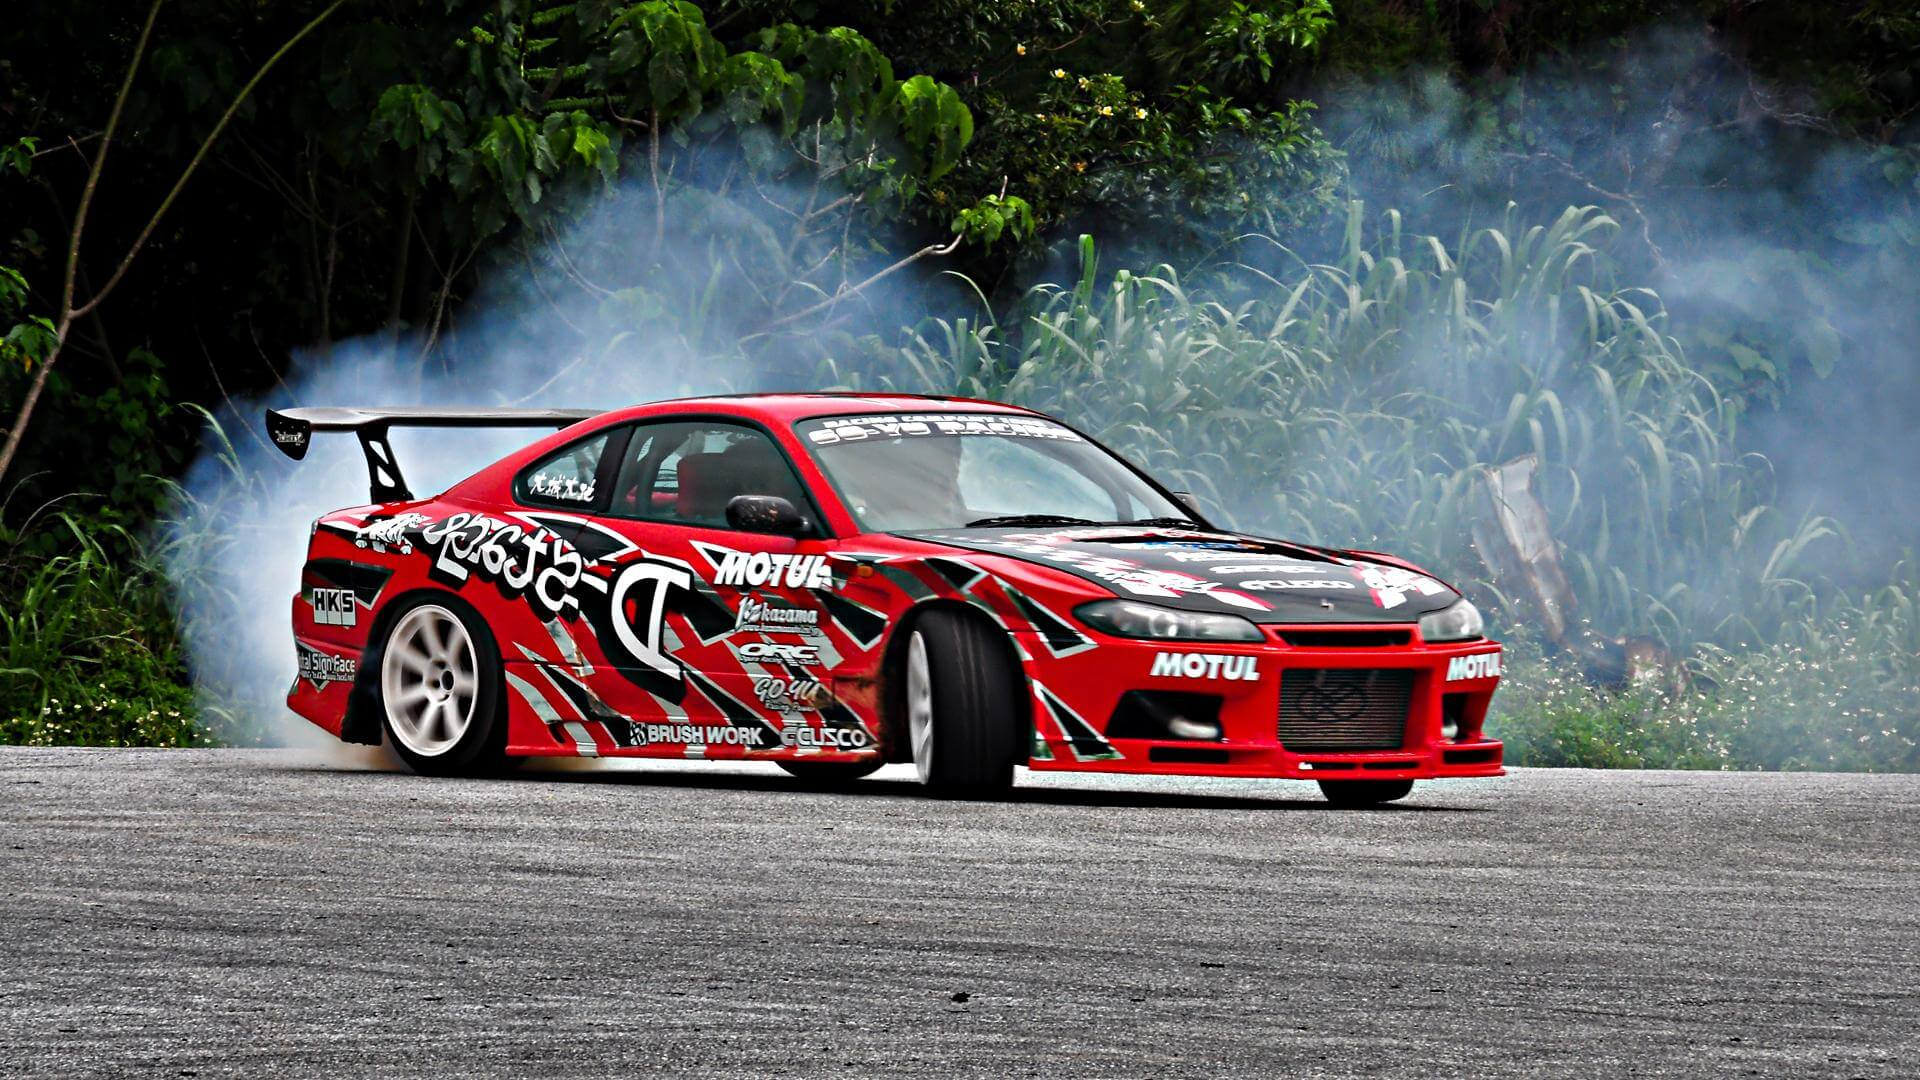 Mazda Mx3 2016 >> Nissan Silvia S14 Wallpapers | Coches Japoneses